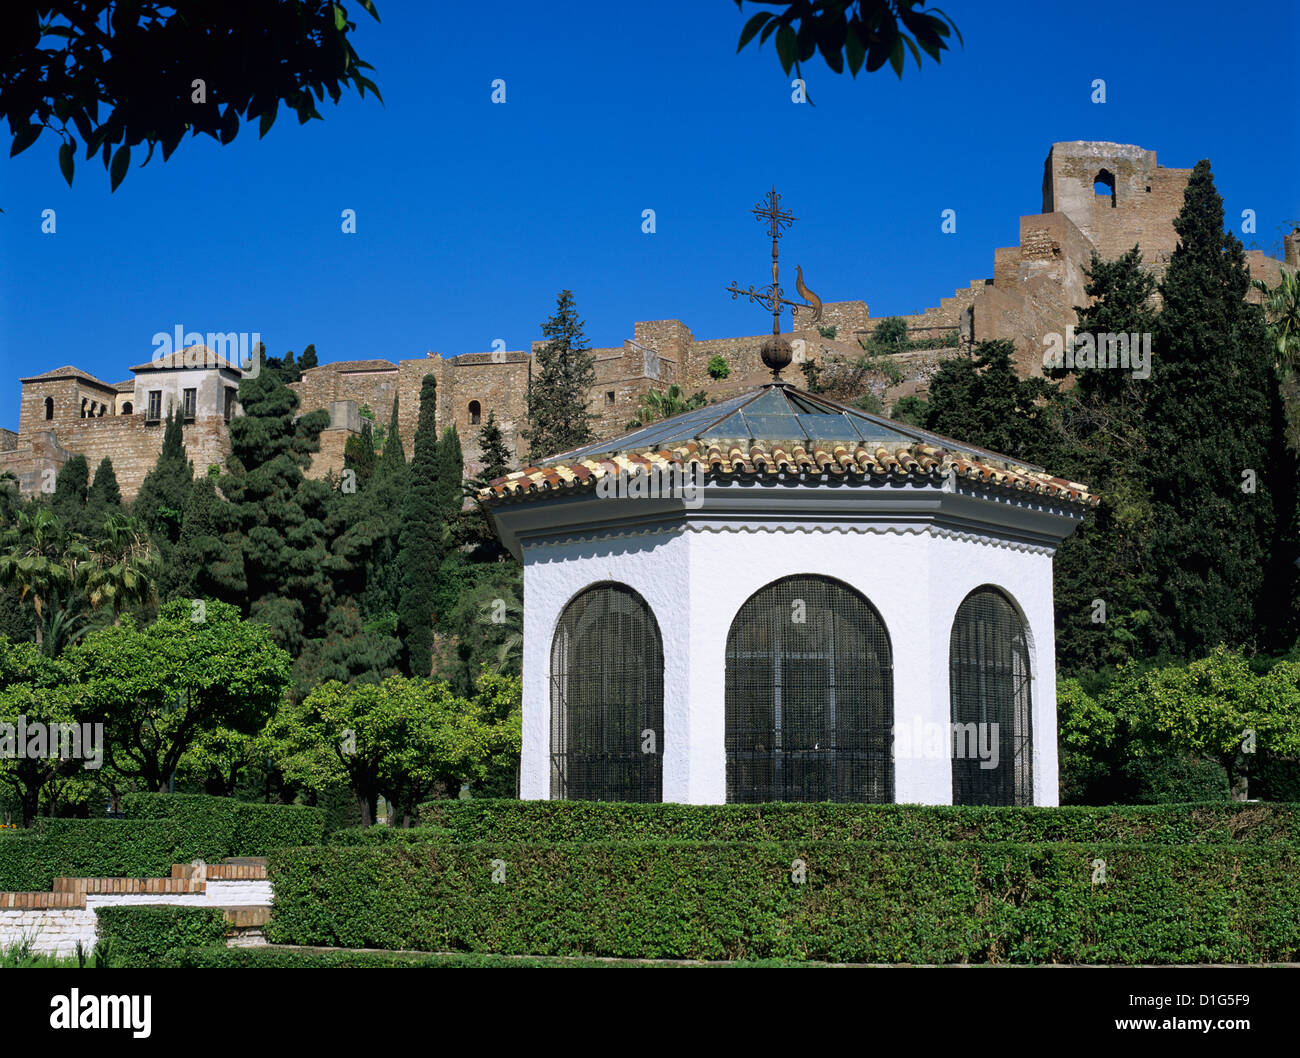 Alcazaba viewed from gardens, Malaga, Andalucia, Spain, Europe - Stock Image